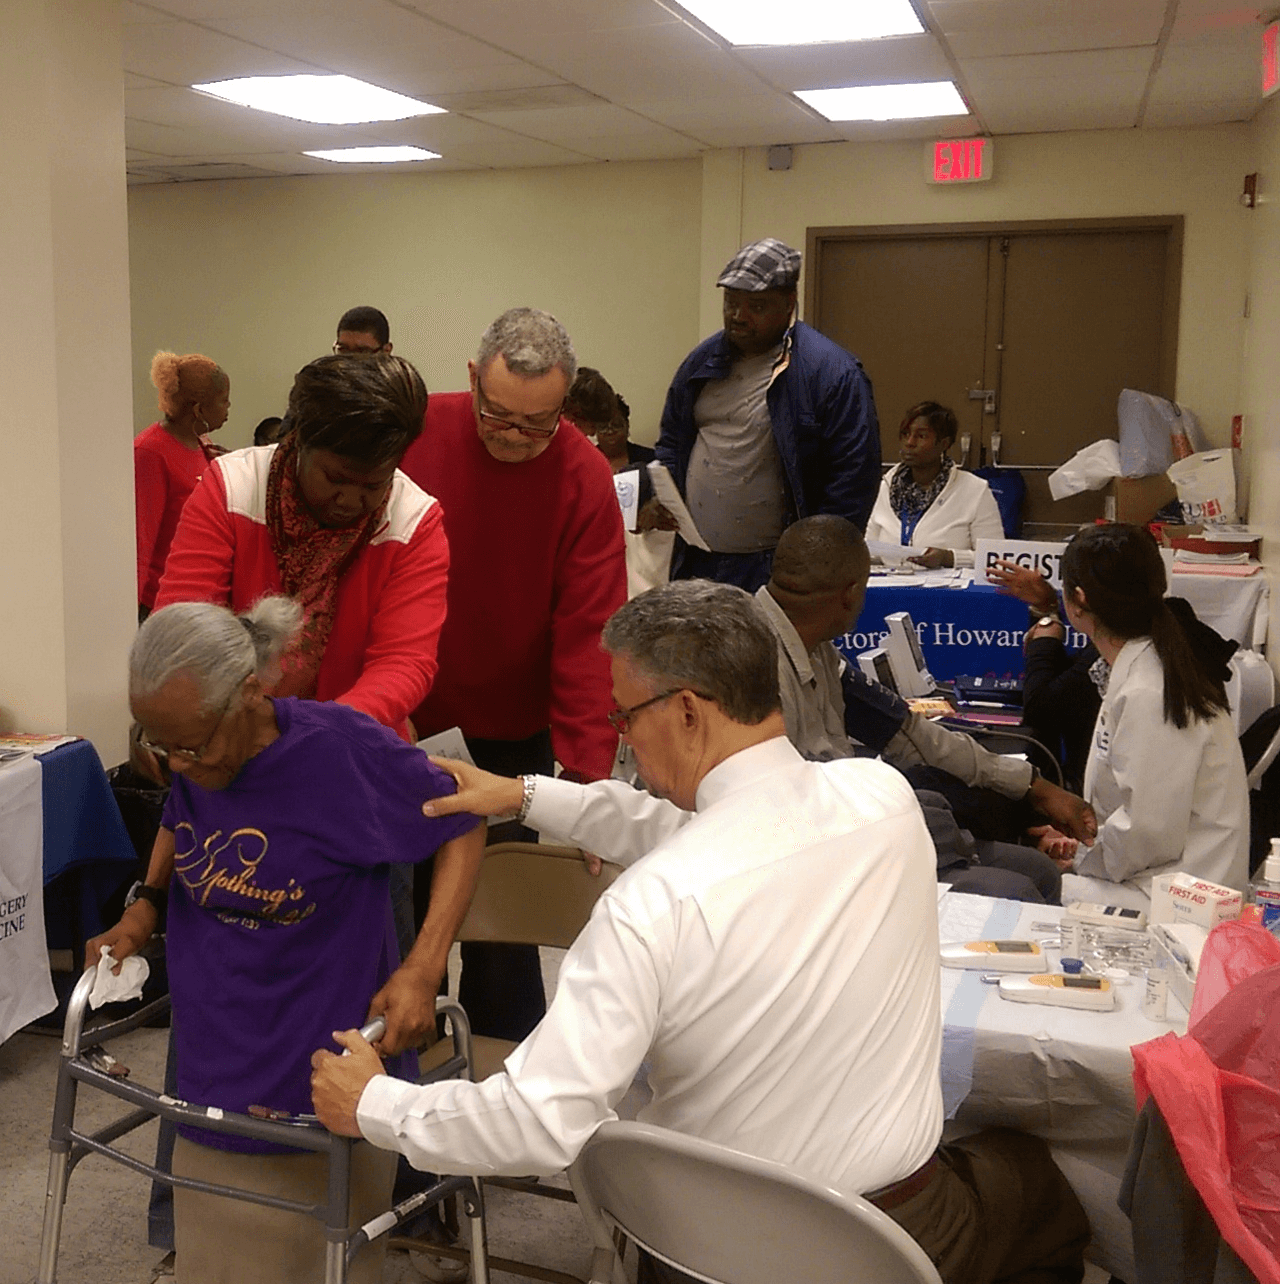 Residents receiving screenings and health information